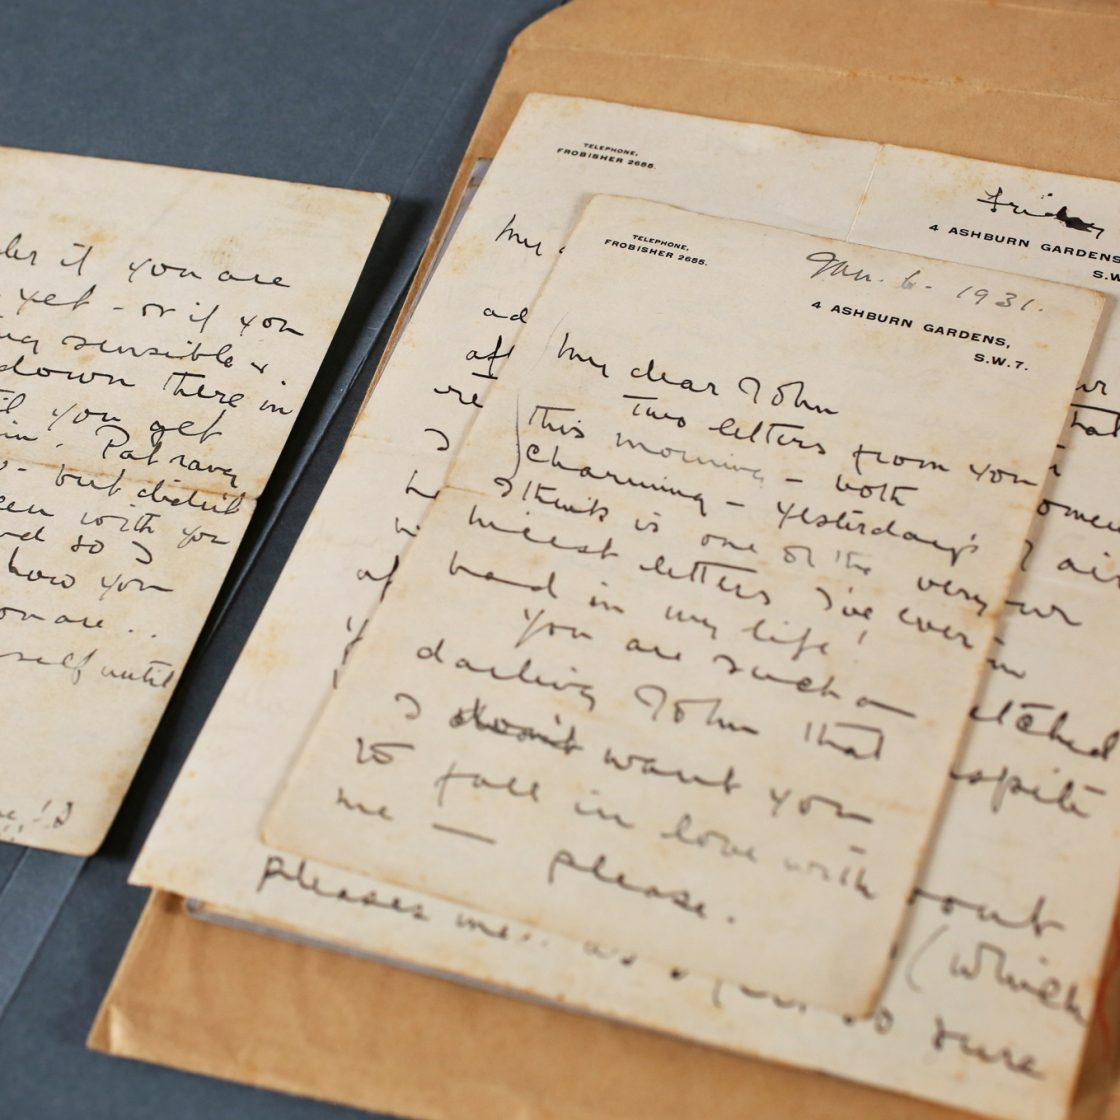 A selection of Audrey Mildmay and John Christie's letters. Photo: Sam Stephenson